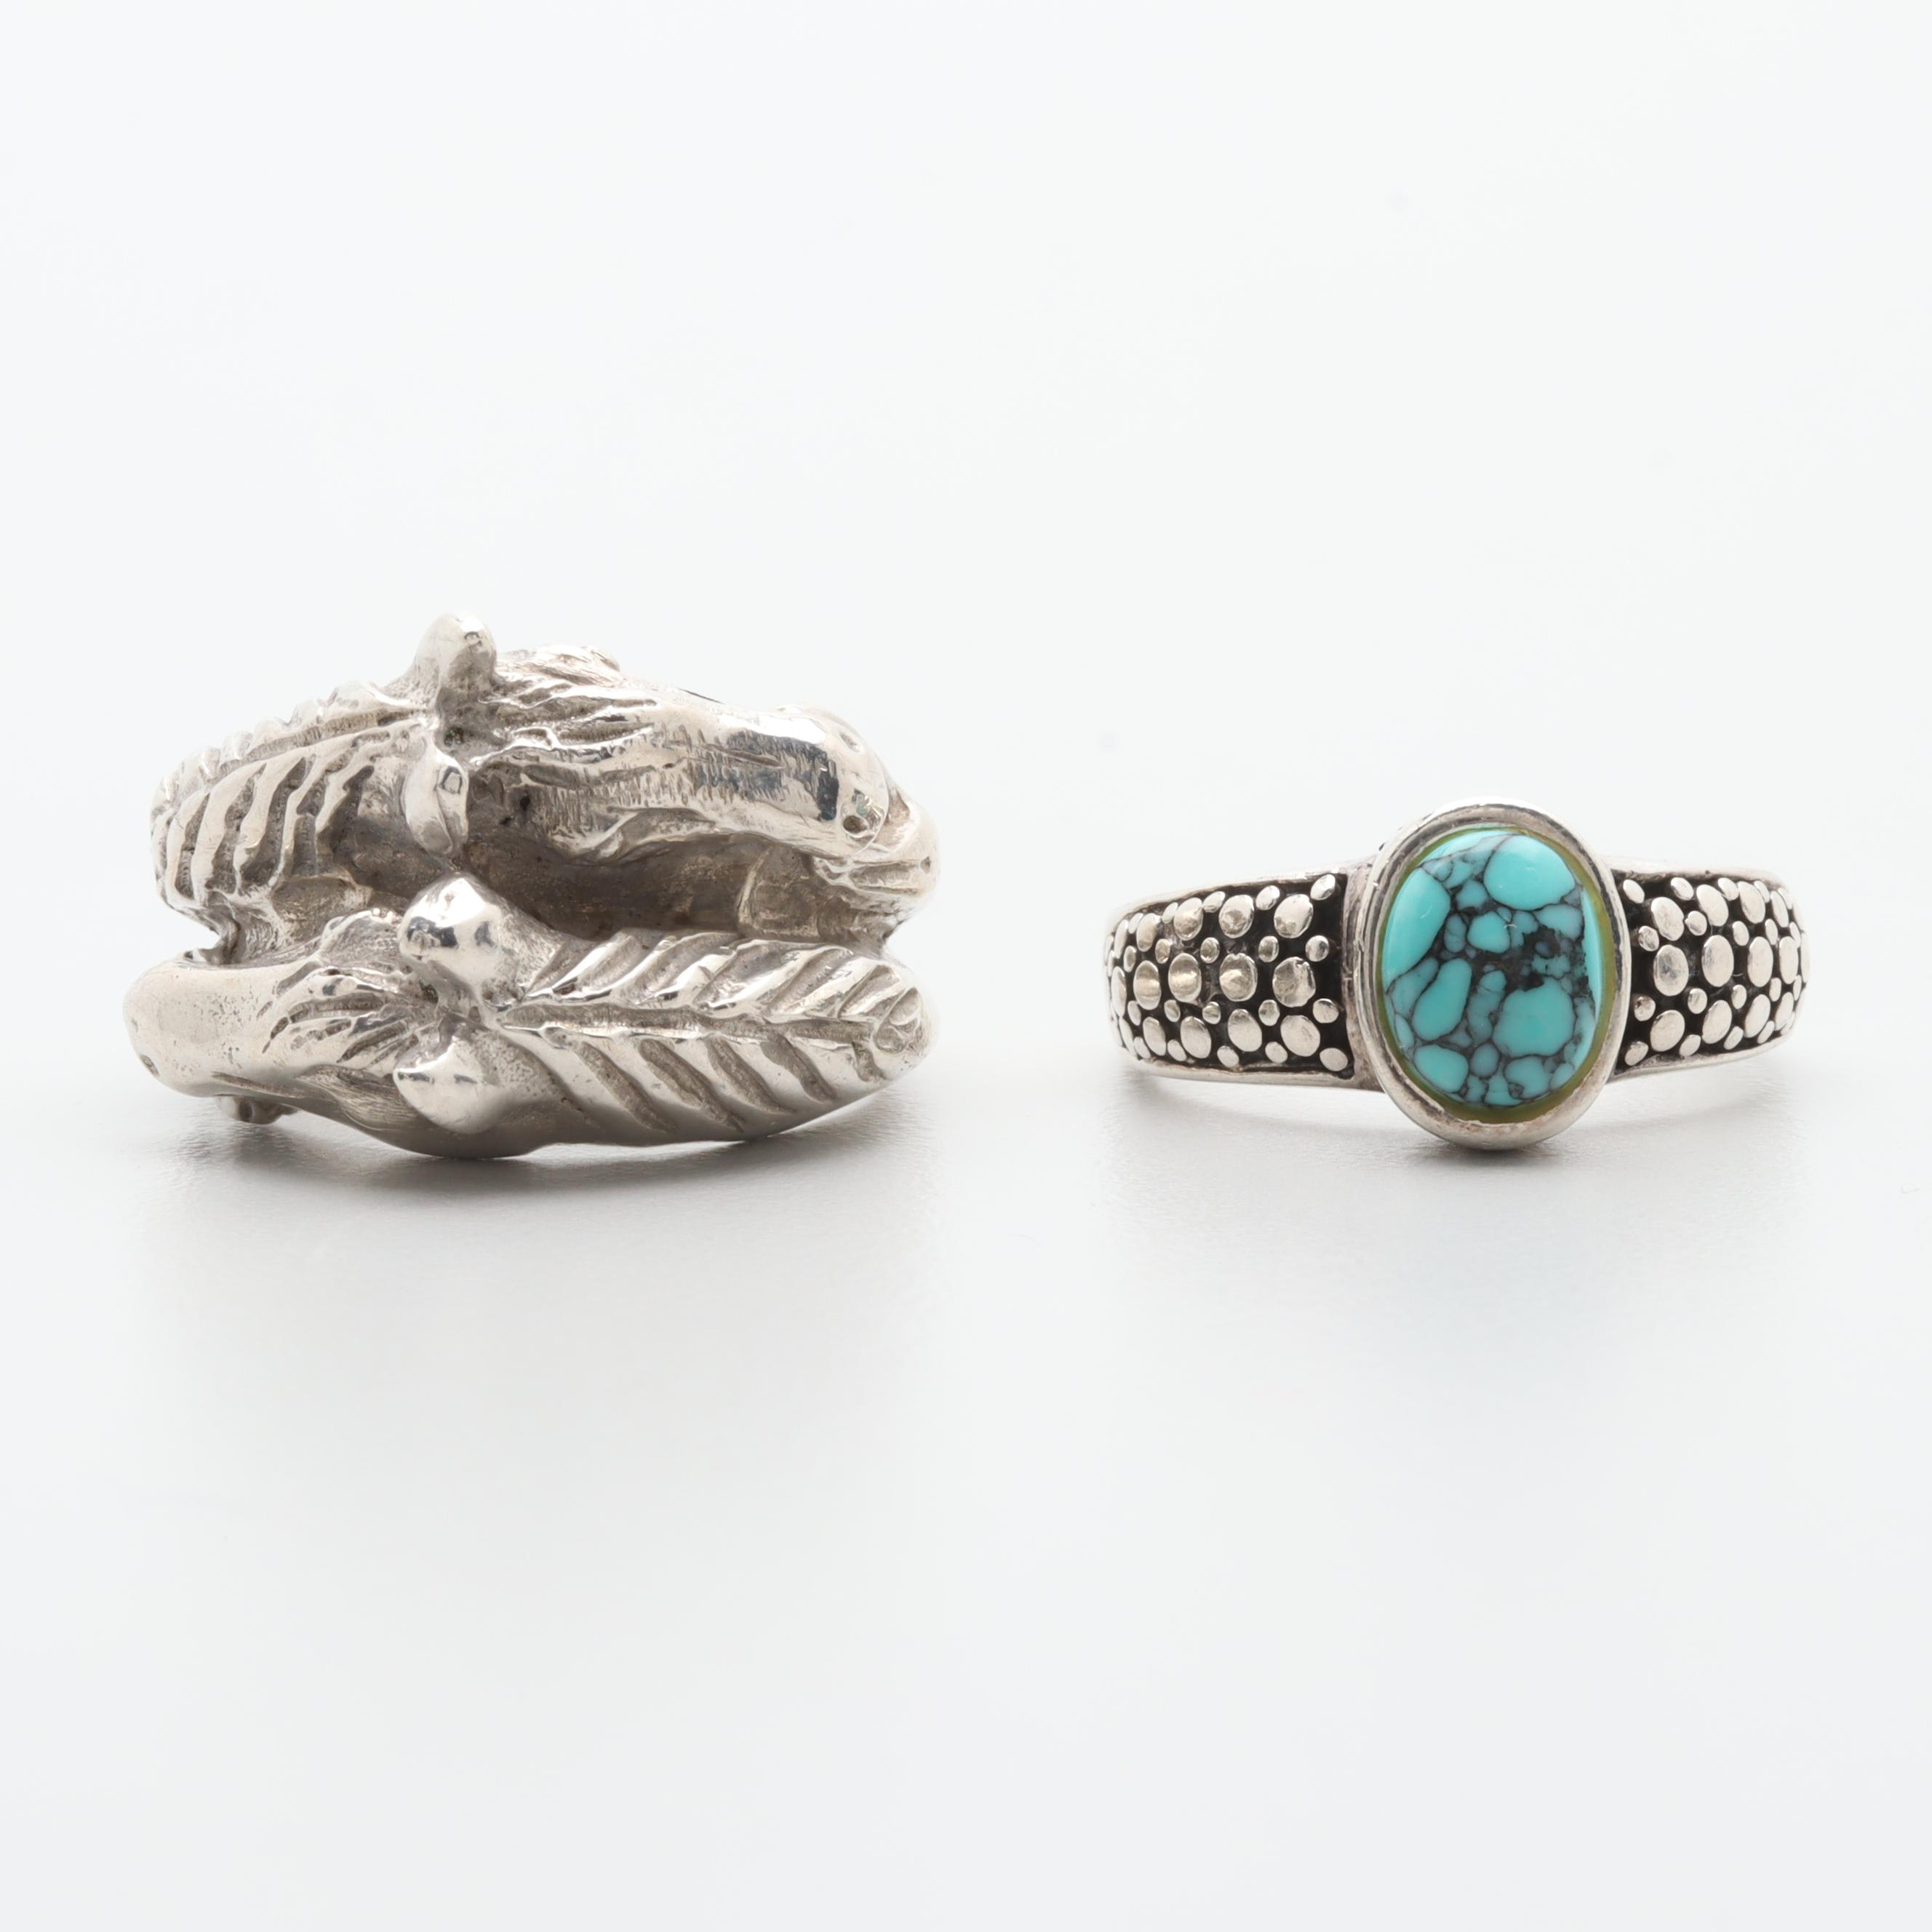 Southwestern Style Sterling Silver Ring Selection Including Turquoise